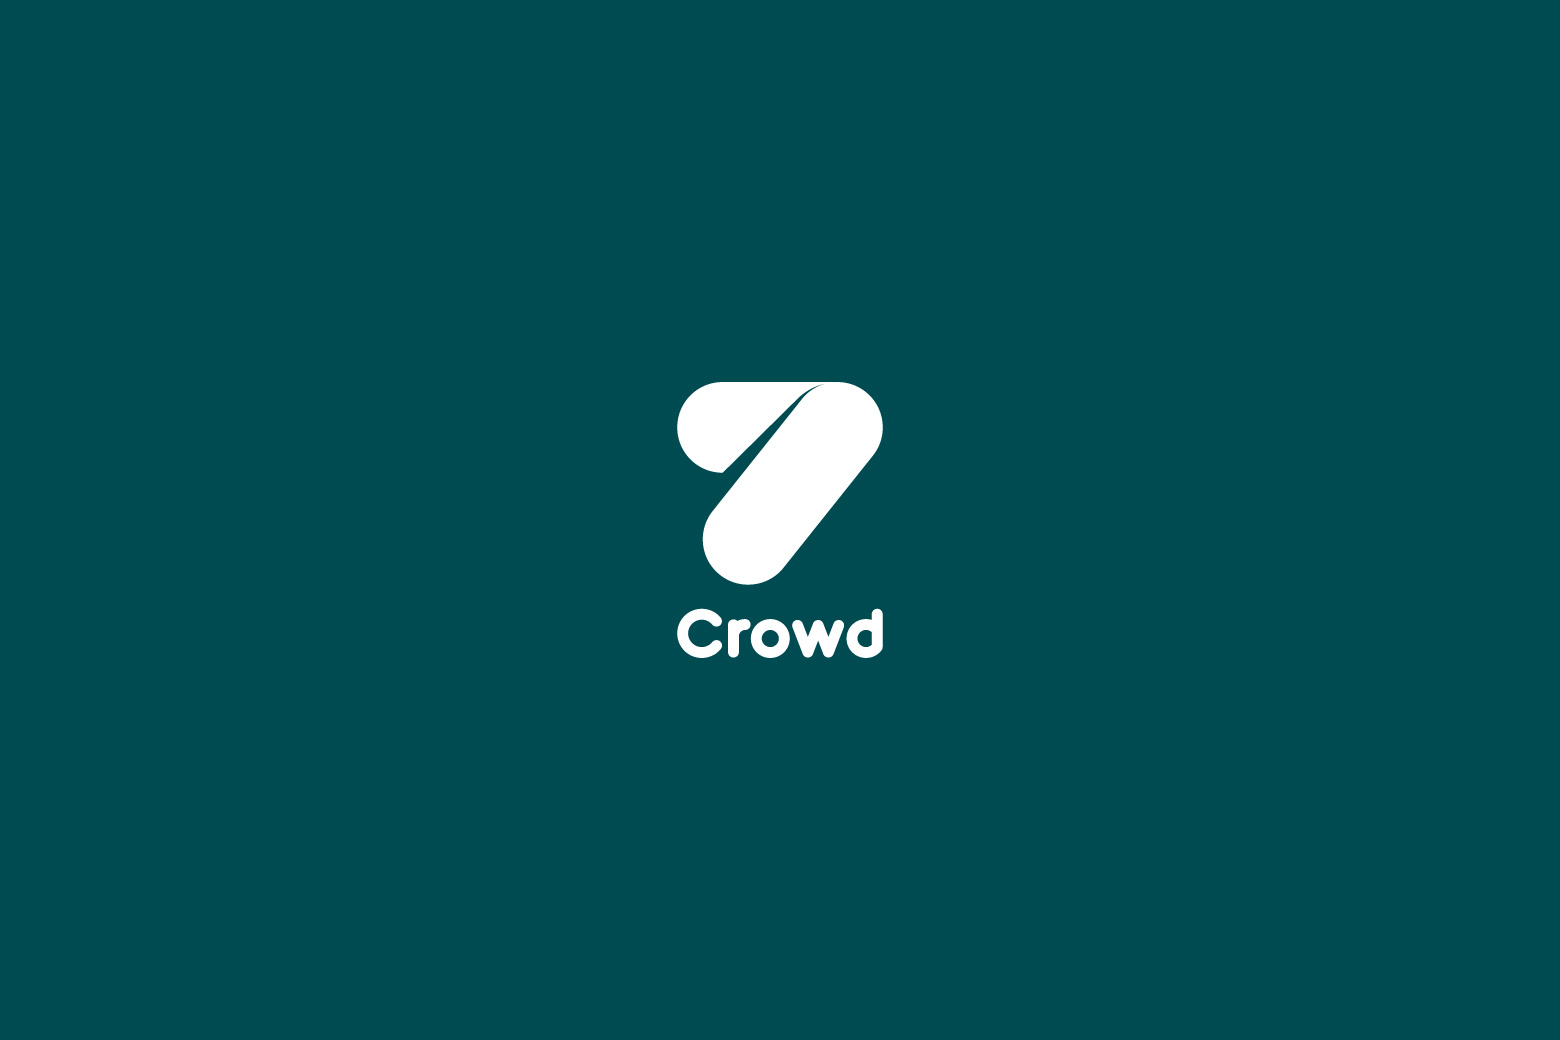 7Crowd_logo@2x